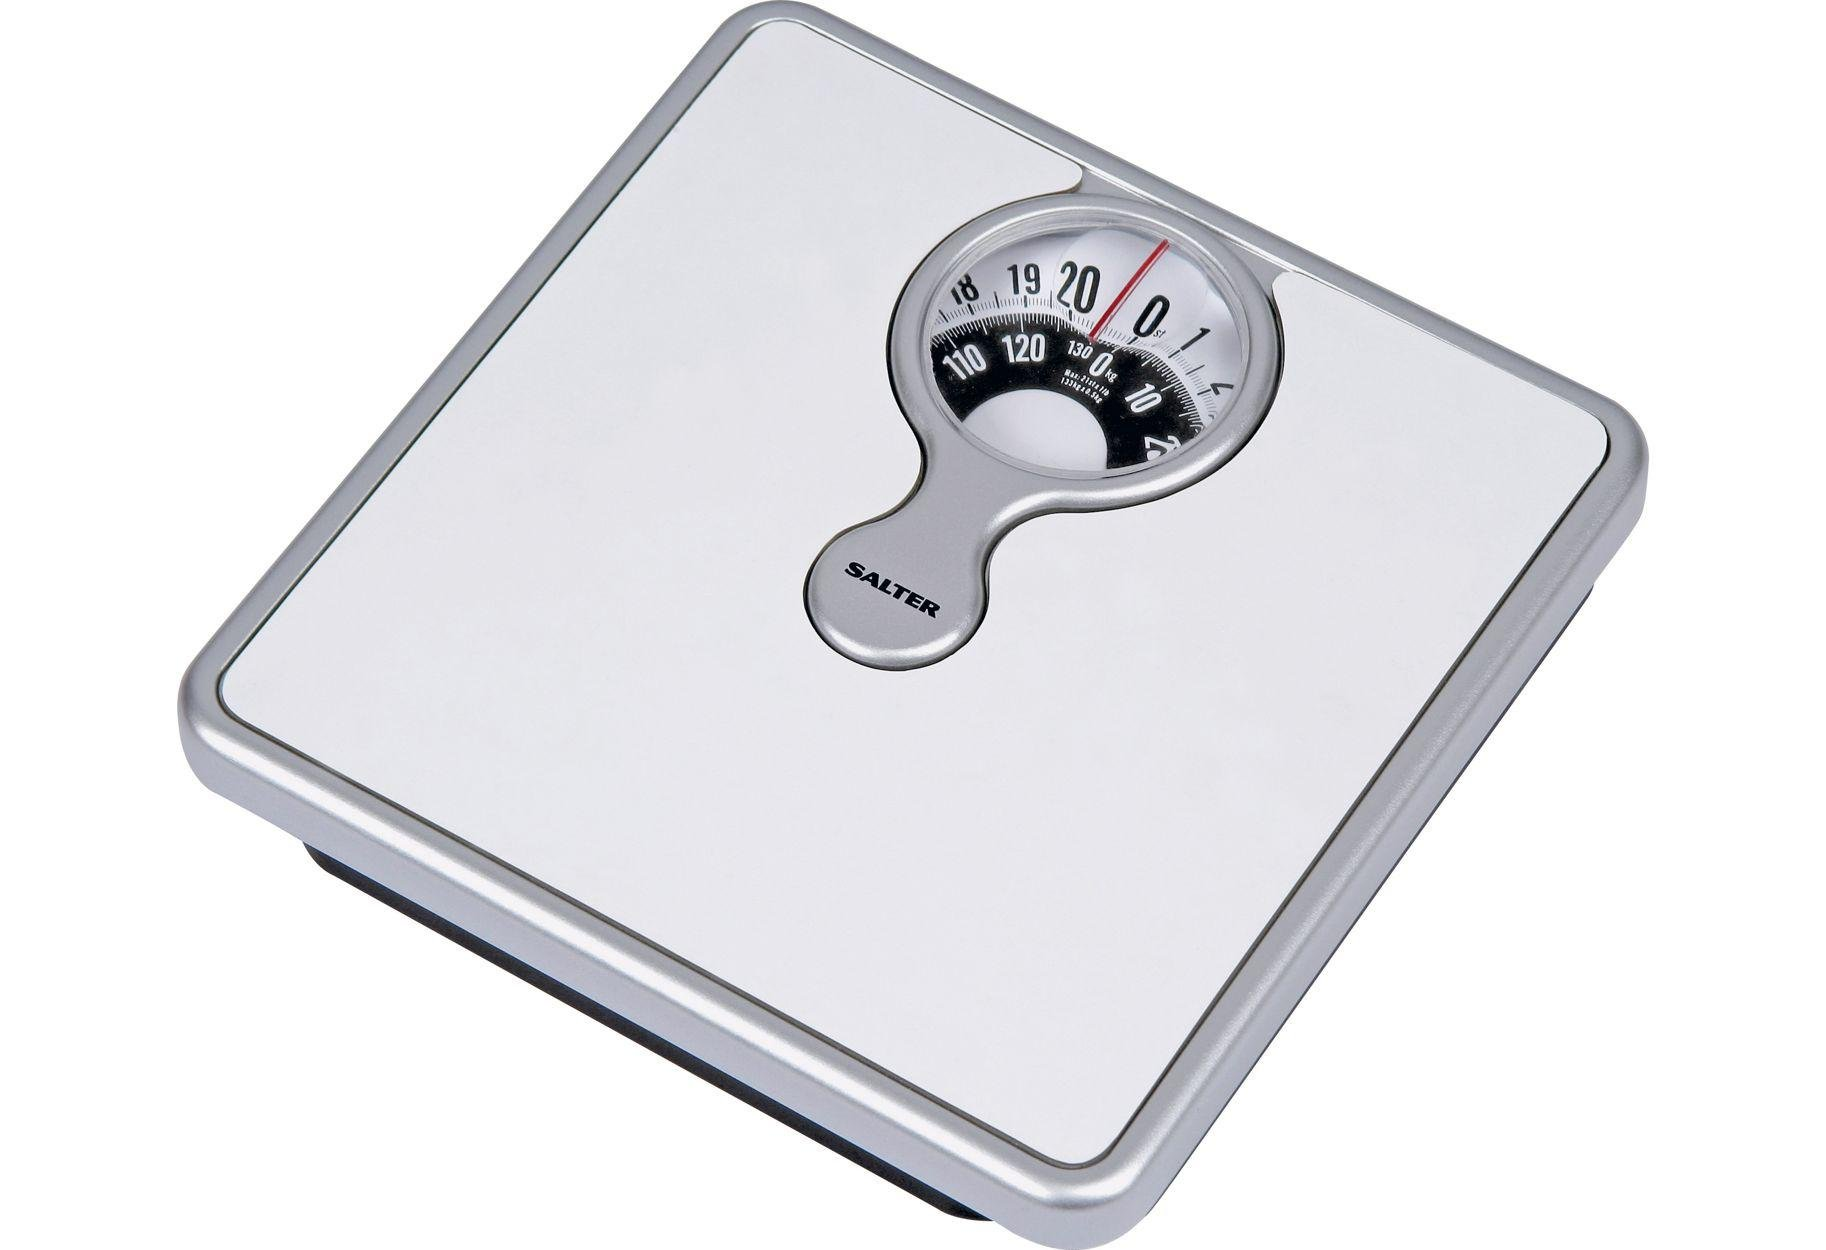 Salter Magnifying Mechanical Bathroom Scales - White & Silv from Salter